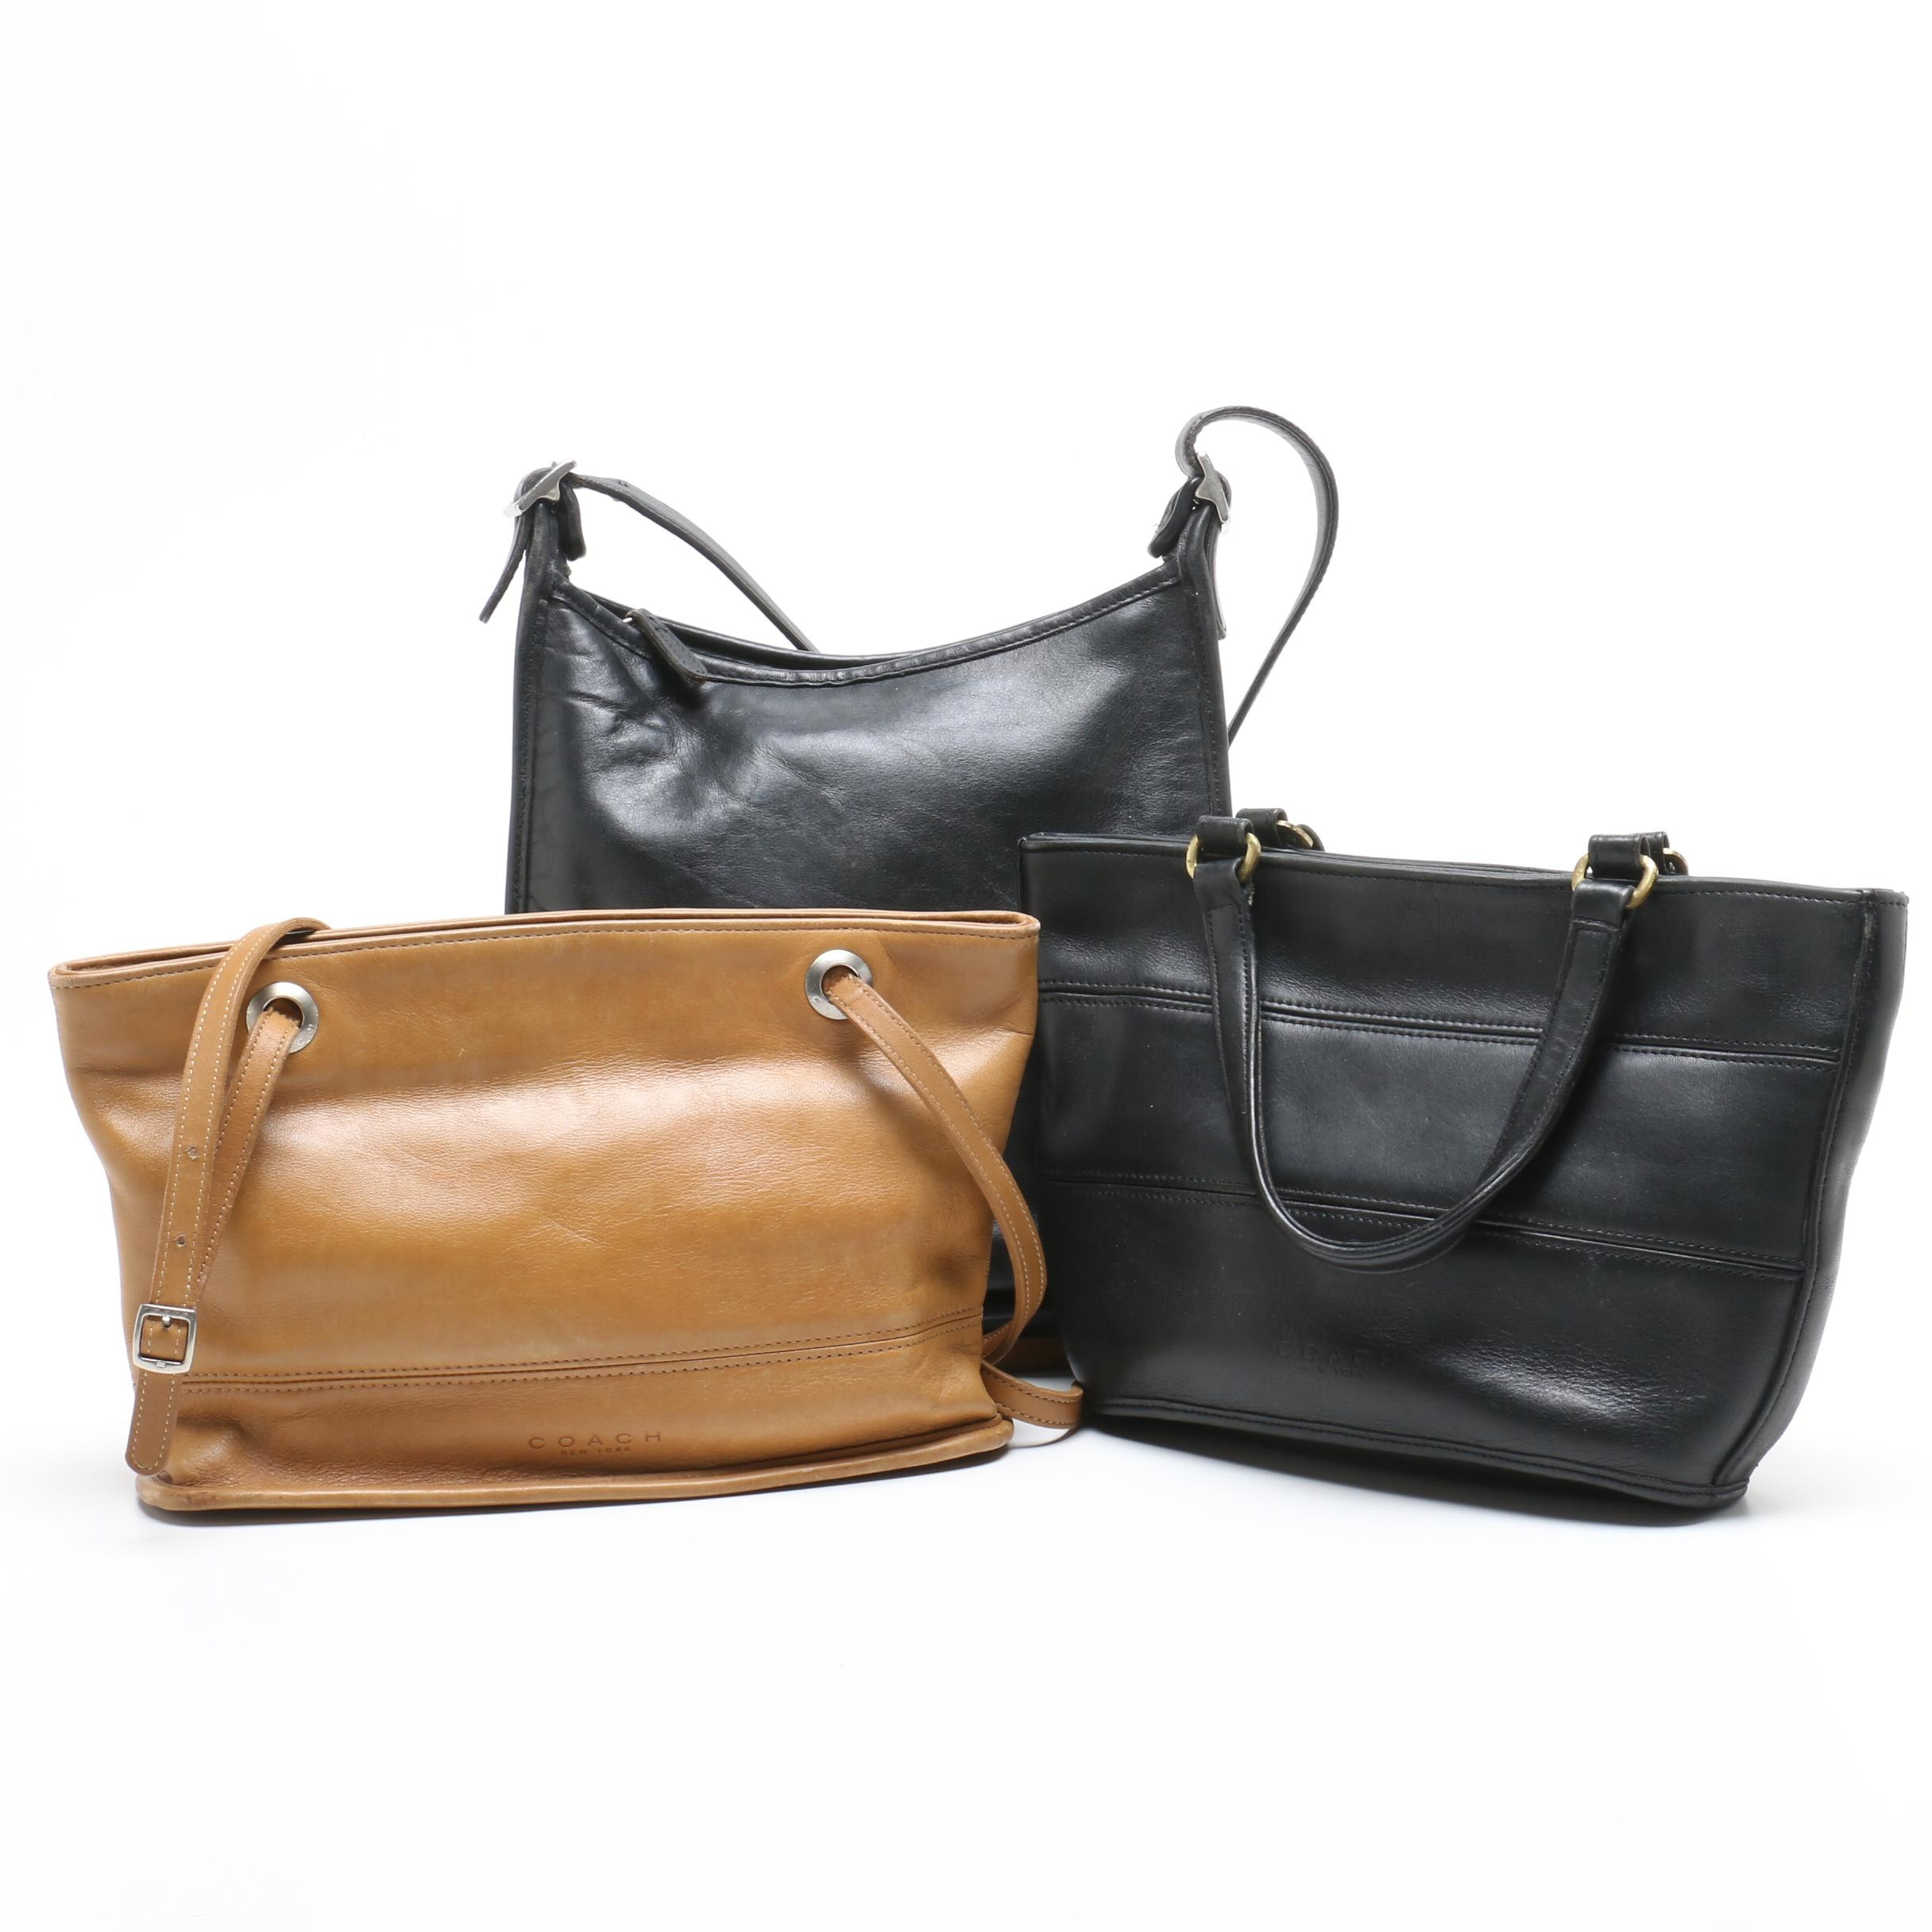 Coach Black Leather Tribeca Tote and Leather Shoulder Bags